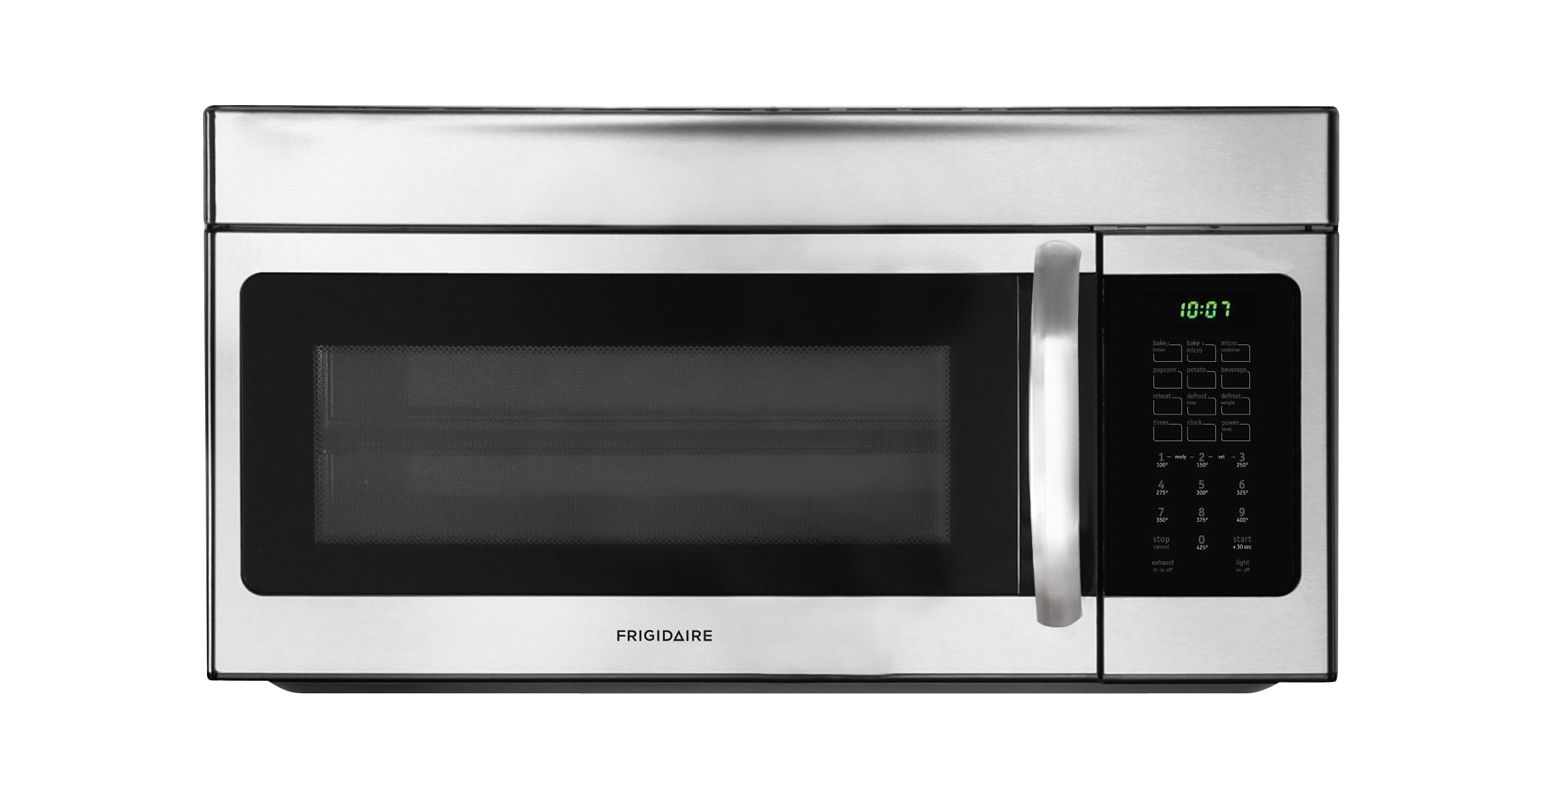 Frigidaire FFMV154CL 1.5 Cubic Foot Over-The-Range Microwave Oven with Bake & Br photo